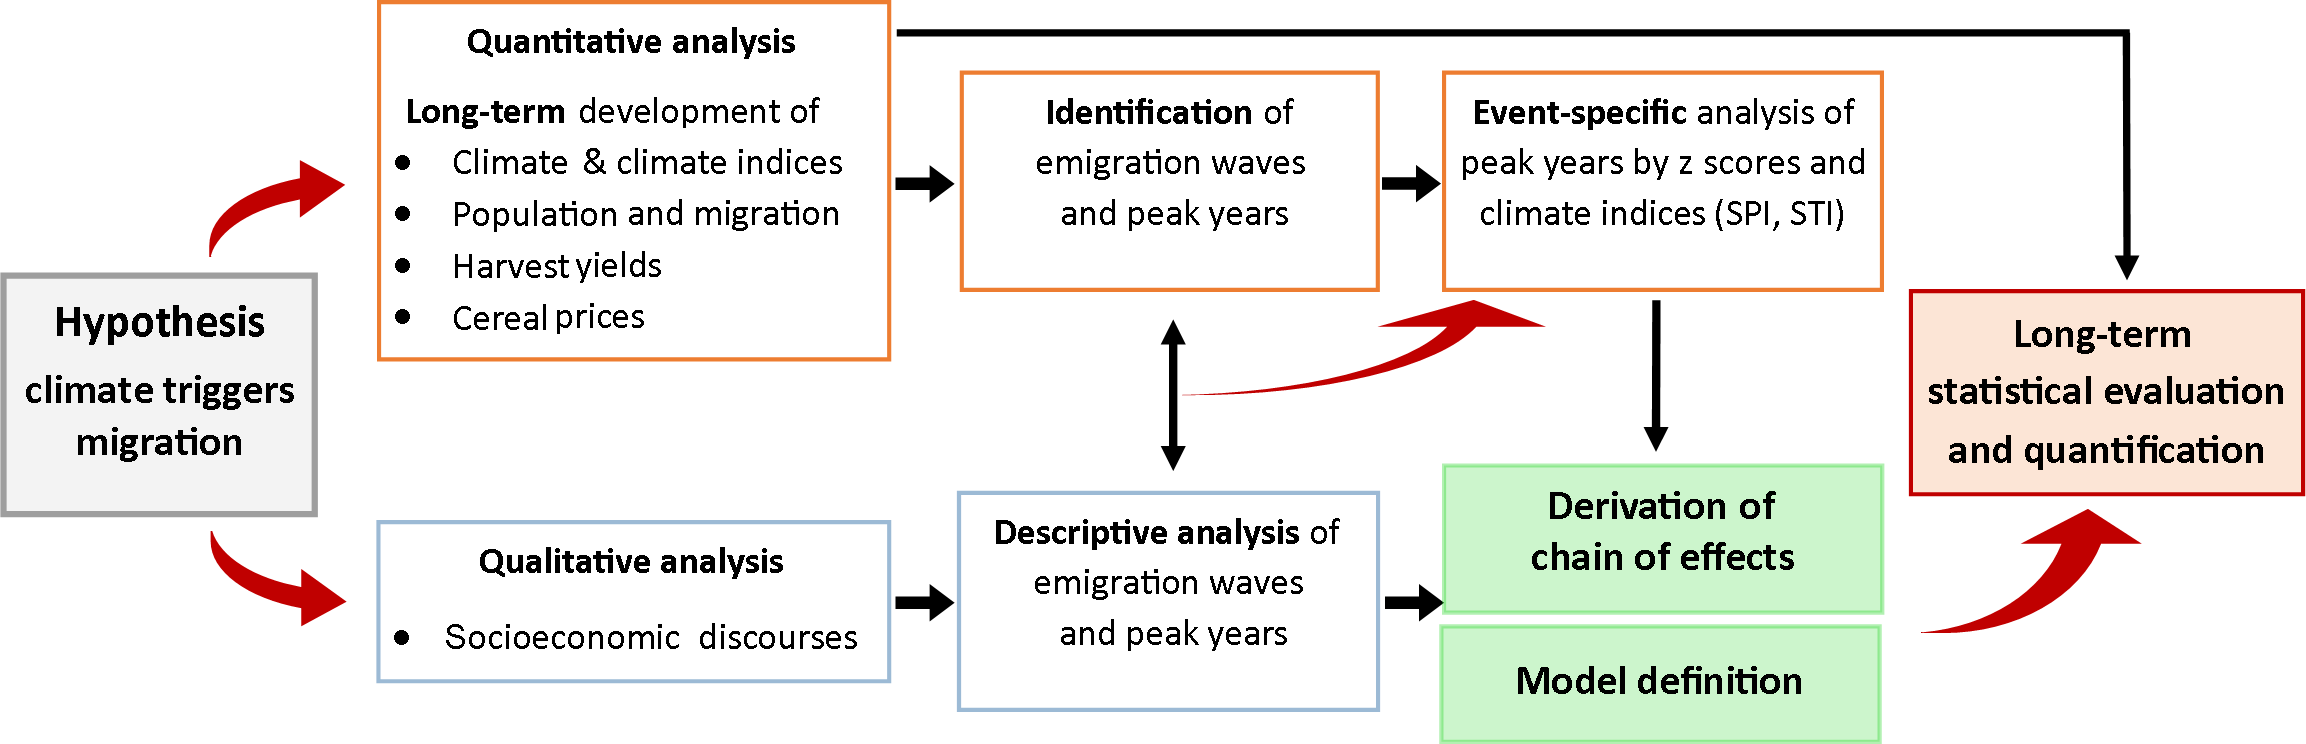 Maritime Witterung to migrate